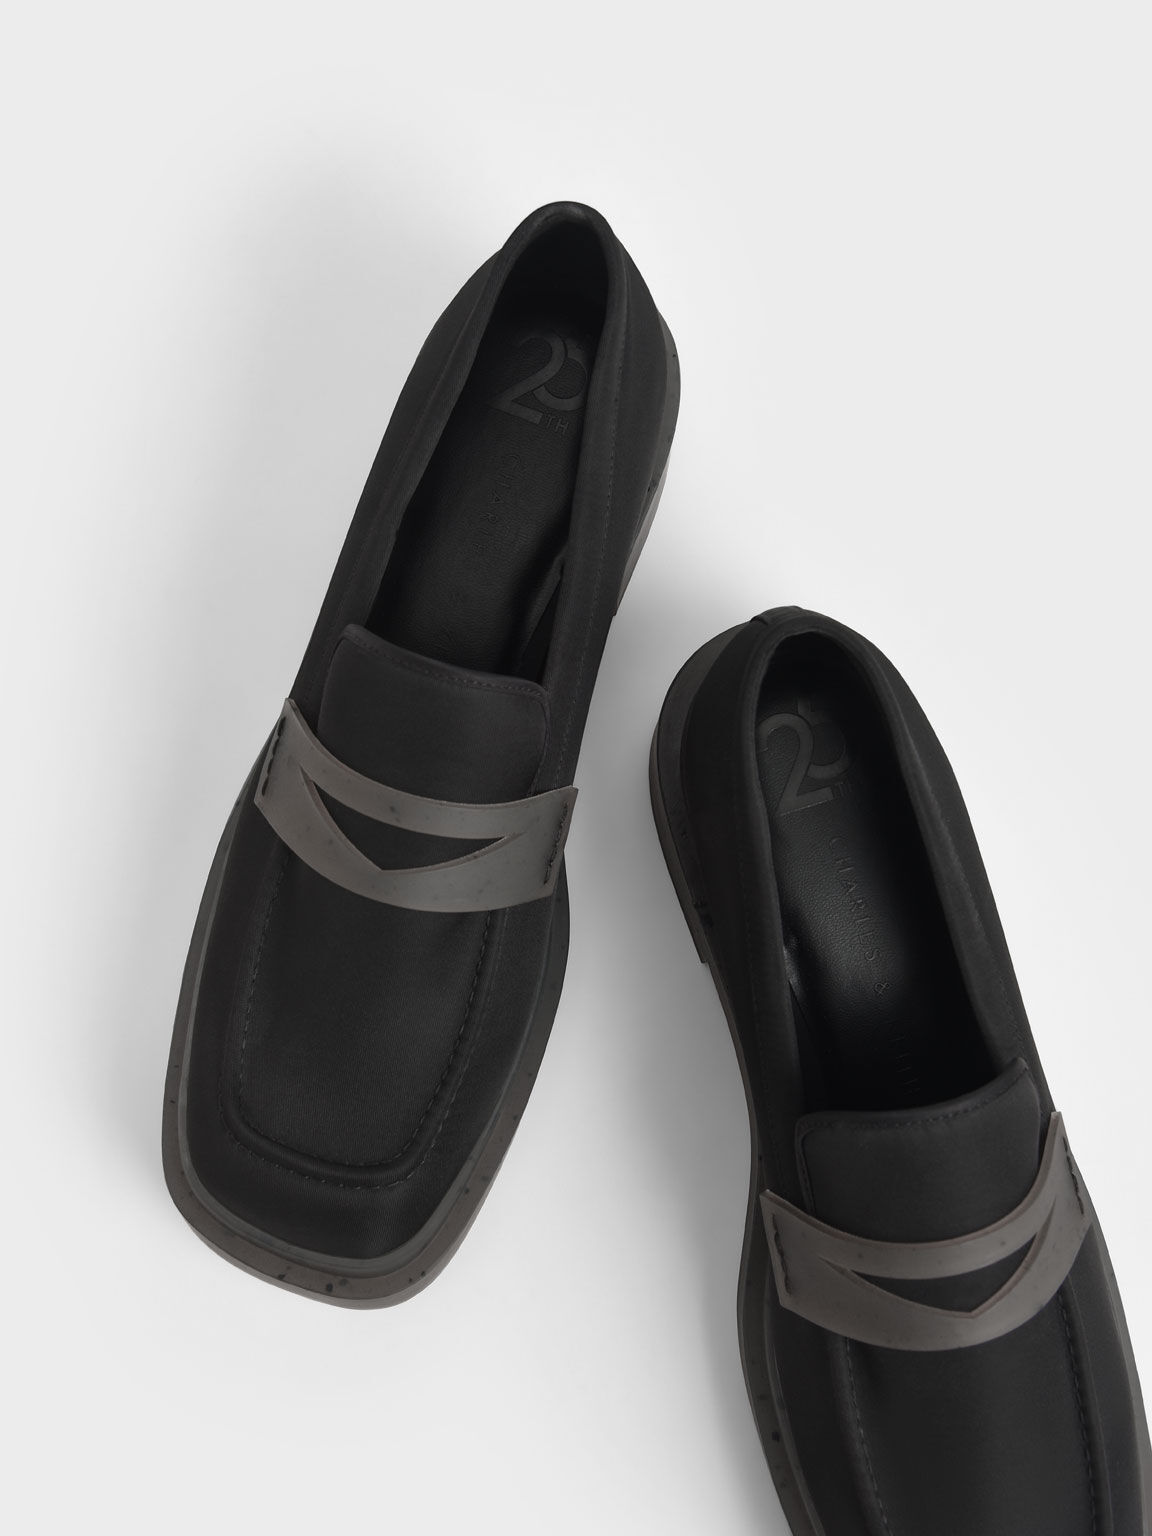 The Anniversary Series: Charli Recycled Nylon Penny Loafers, Black, hi-res